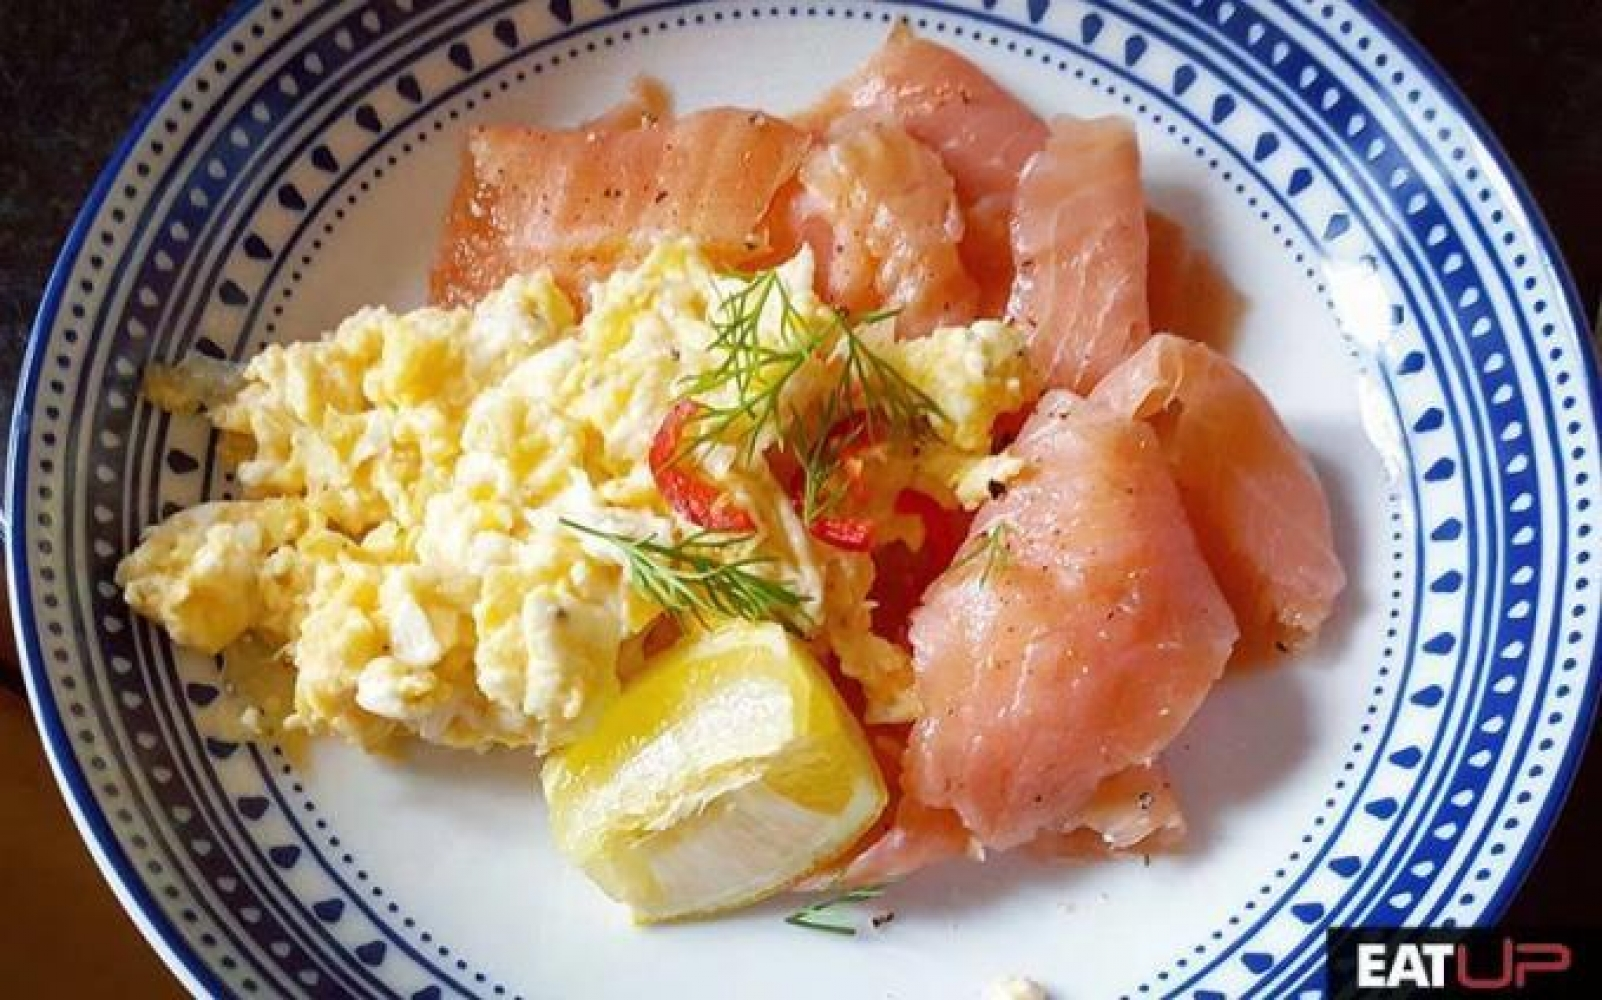 20170221 Upcontent Salmon And Eggs Breakfast